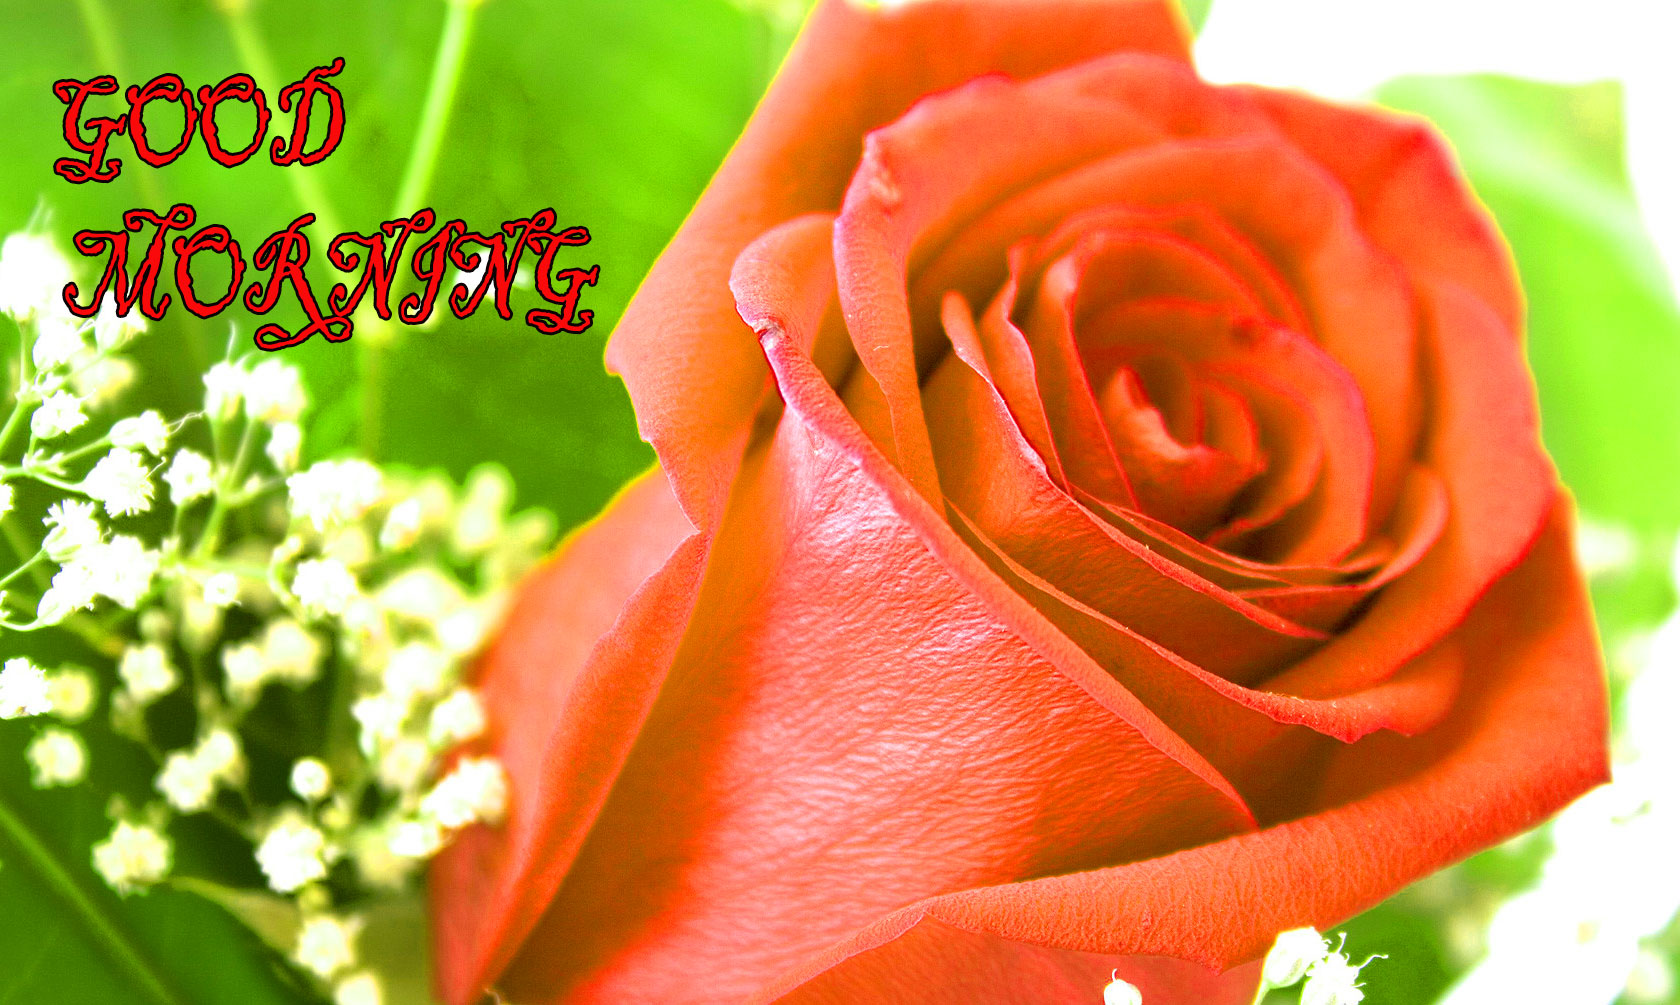 GOOD MORNING IMAGE WITH BEAUTIFUL FLOWERS NATURE WALLPAPER PIC FOR RED ROSE